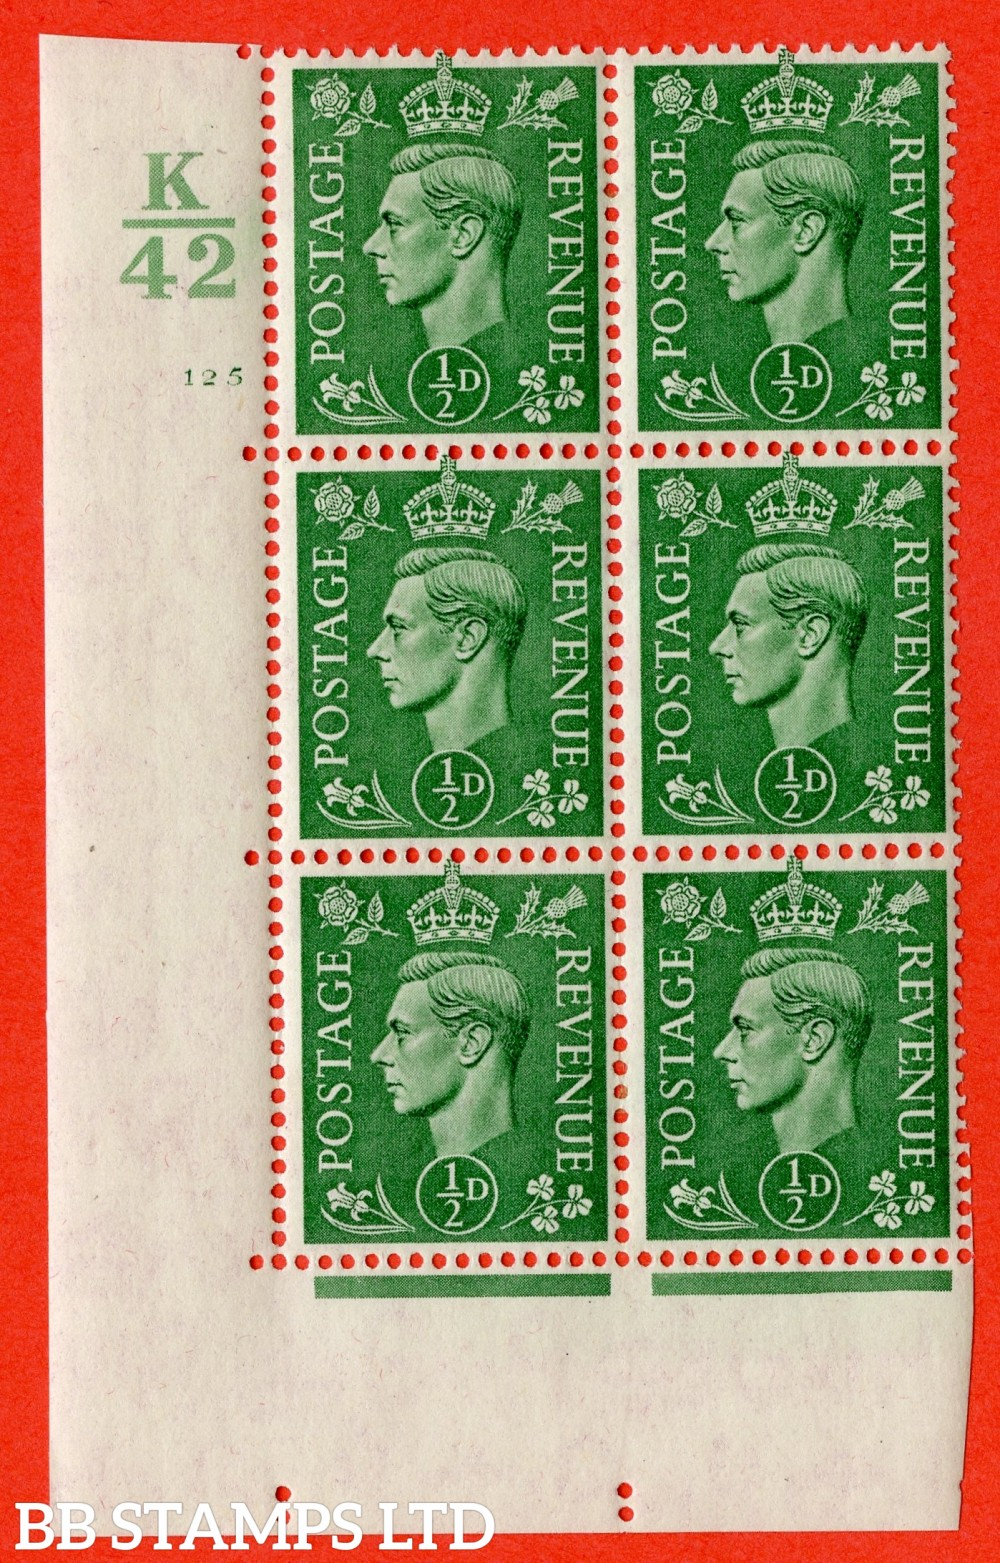 "SG. 485. Q2. ½d Pale Green. A very fine lightly mounted mint "" Control K42 cylinder 125 no dot "" block of 6 with perf type 5 E/I with marginal rule."